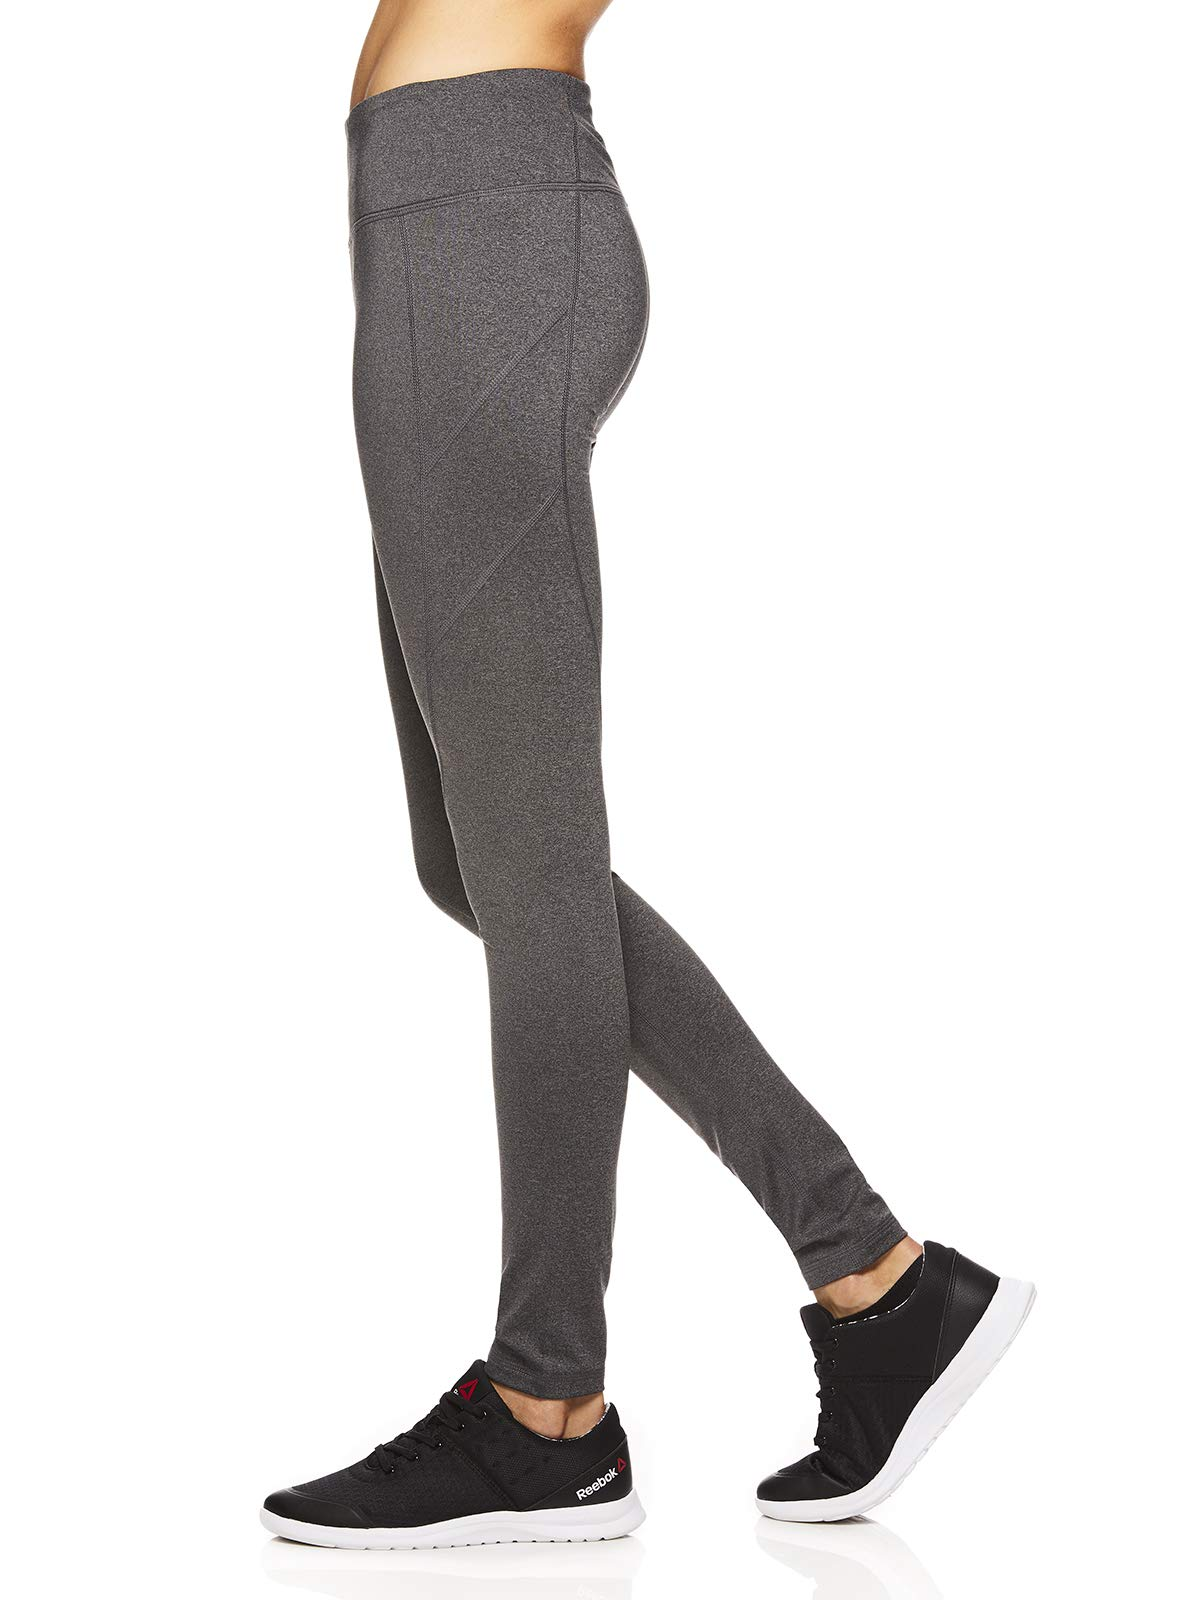 Reebok Women's Leggings Full Length Performance Compression Pants - Athletic Workout Leggings for Women for Gym & Sports - Charcoal Heather Seamed Grey, X-Large by Reebok